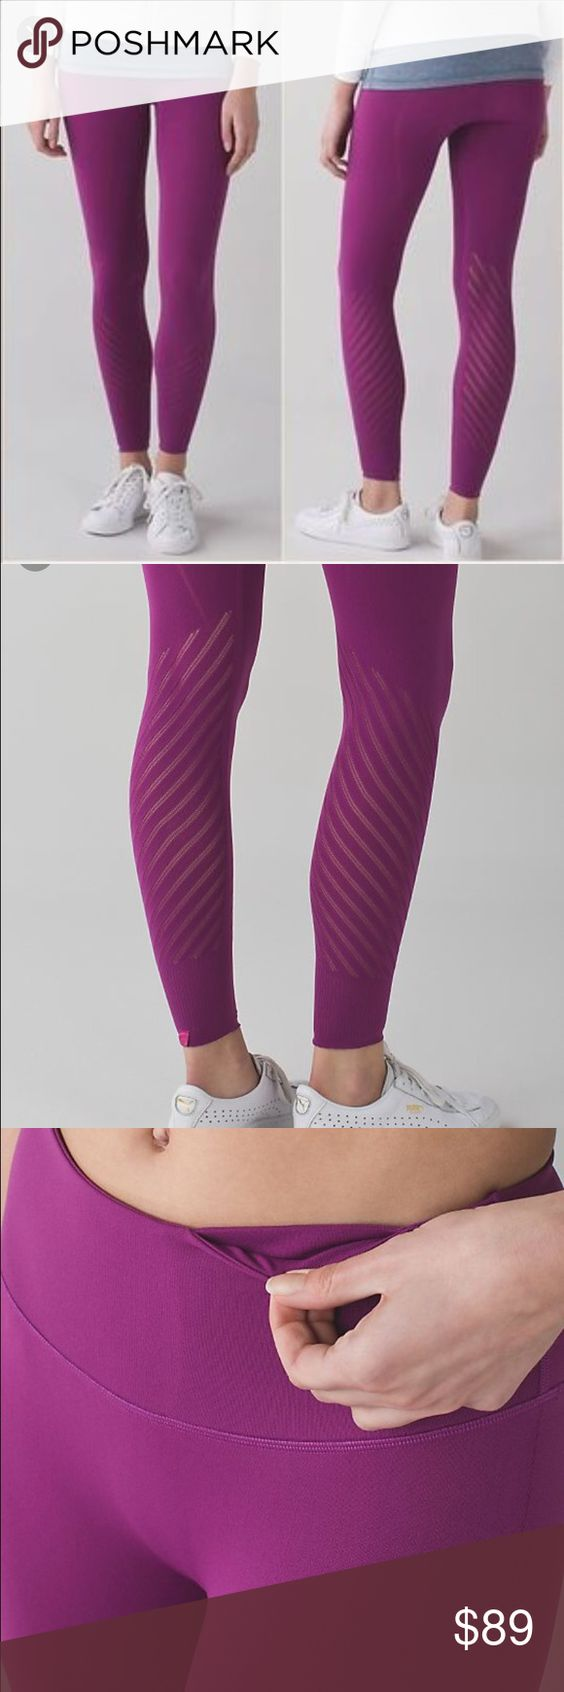 NWT🌻Lululemon🌻Enlighten Tight size large NWT🌻Lululemon🌻Enlighten Tight size large in Regal Plum shade. Designed for your favorite practice, these feather light, high rise tights have engineered mash to let you bend and breathe freely. Fabric is four way stretch and seamless construction keeps chafing at bay. Tuck your key in hidden pocket. These pants are super comfy and stylish! lululemon athletica Pants